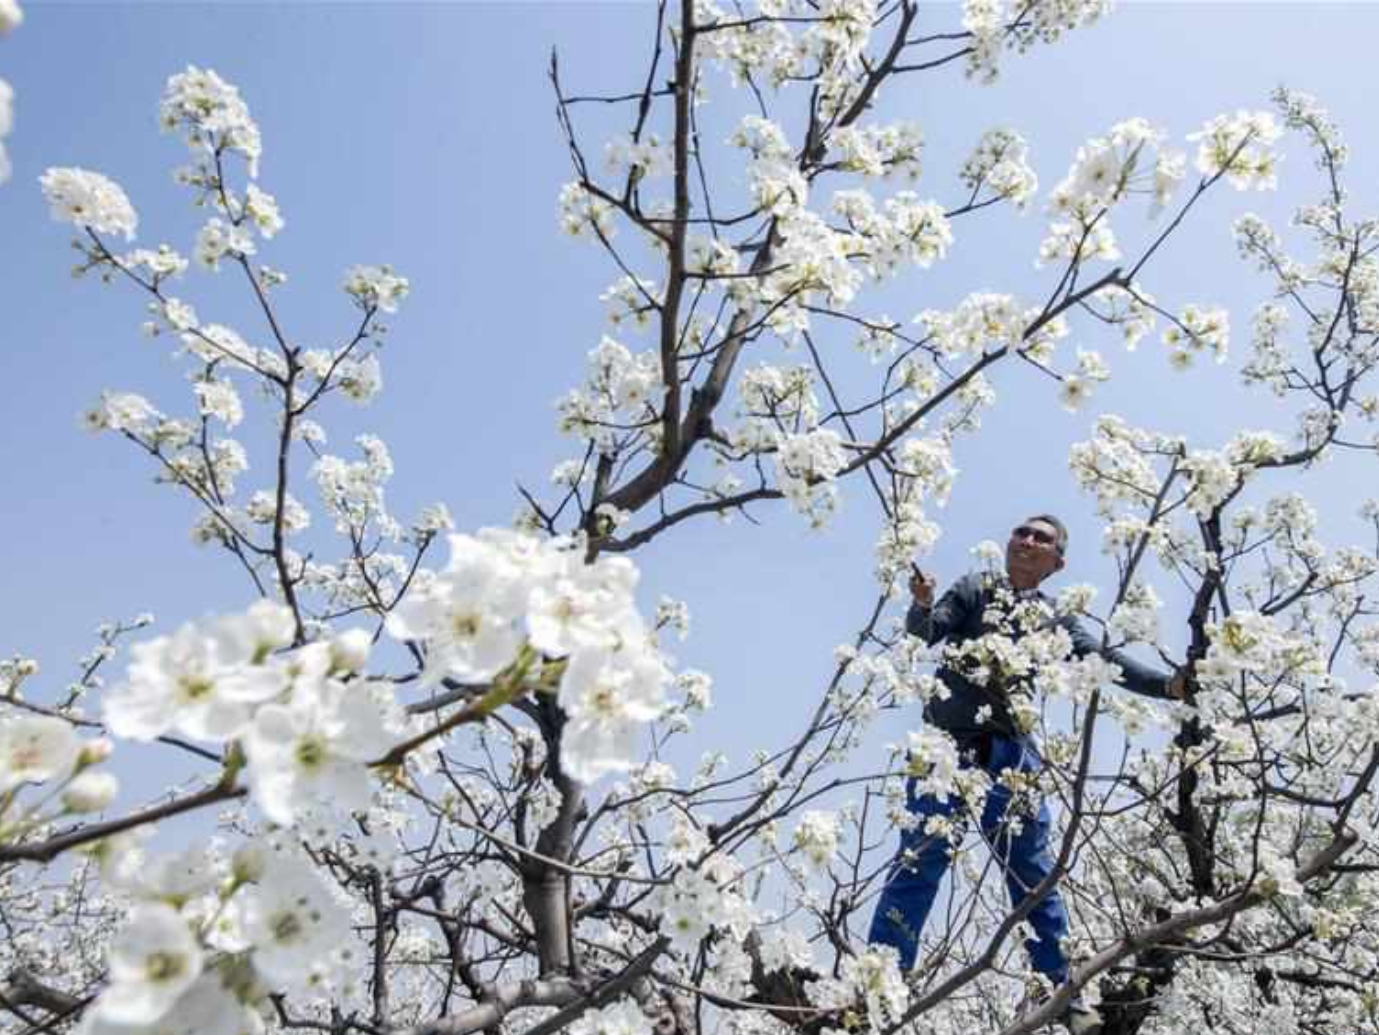 Spring farming underway in China